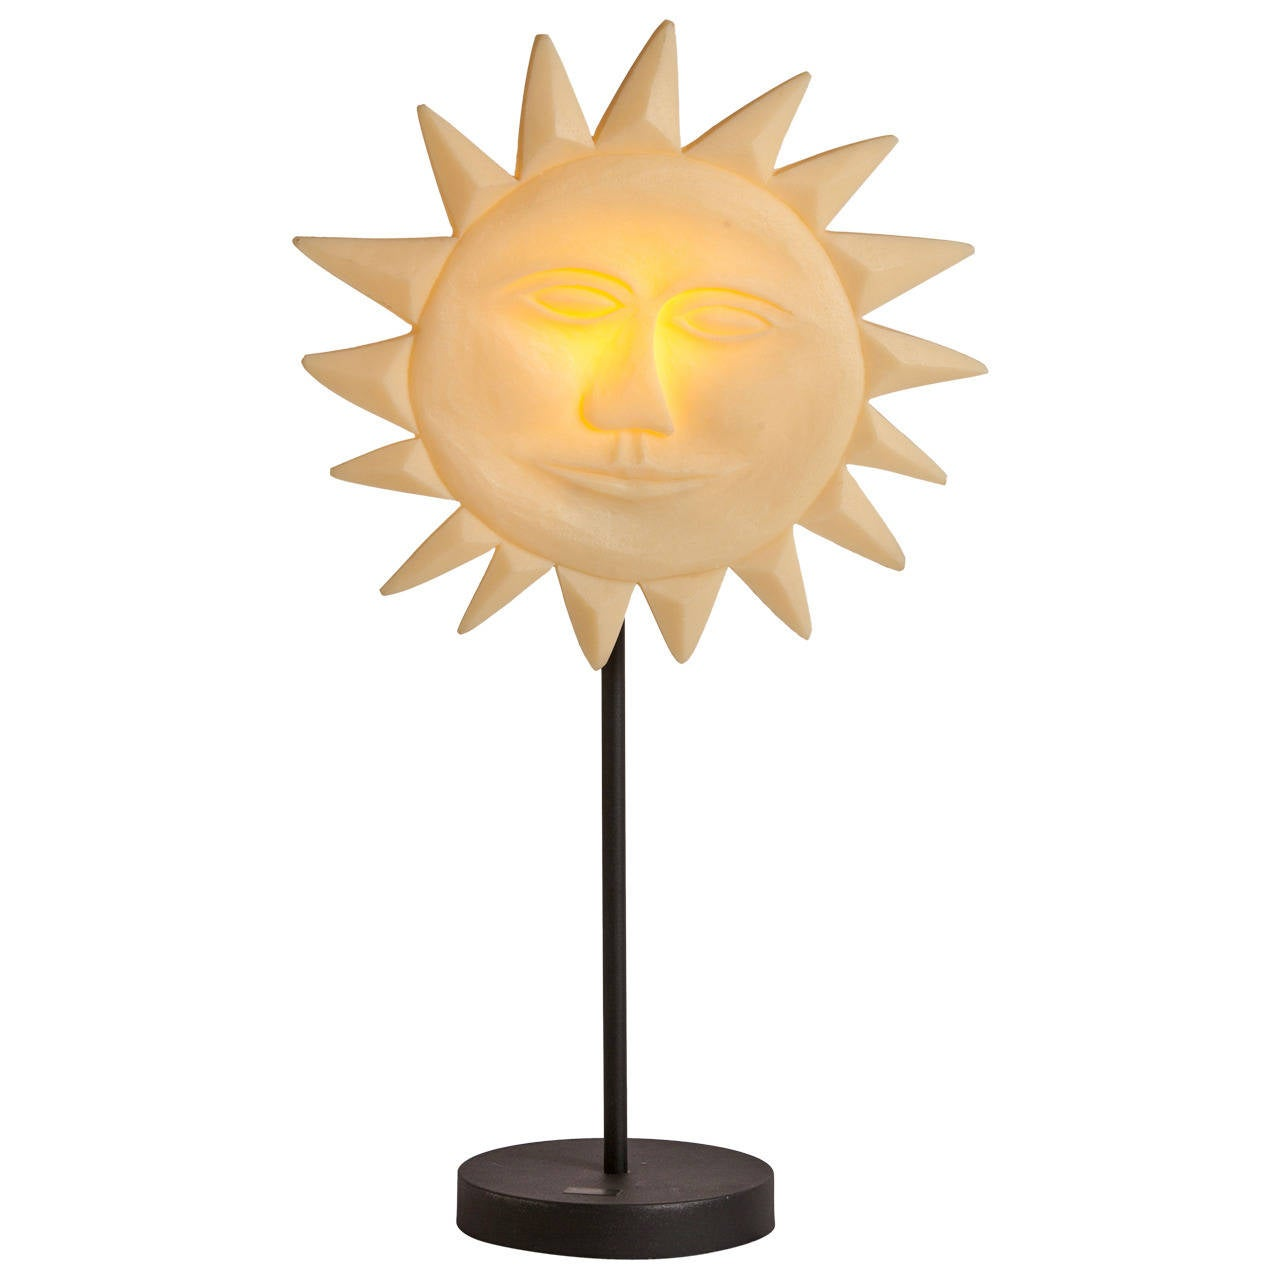 Resin Quot Sun Quot Lamp At 1stdibs